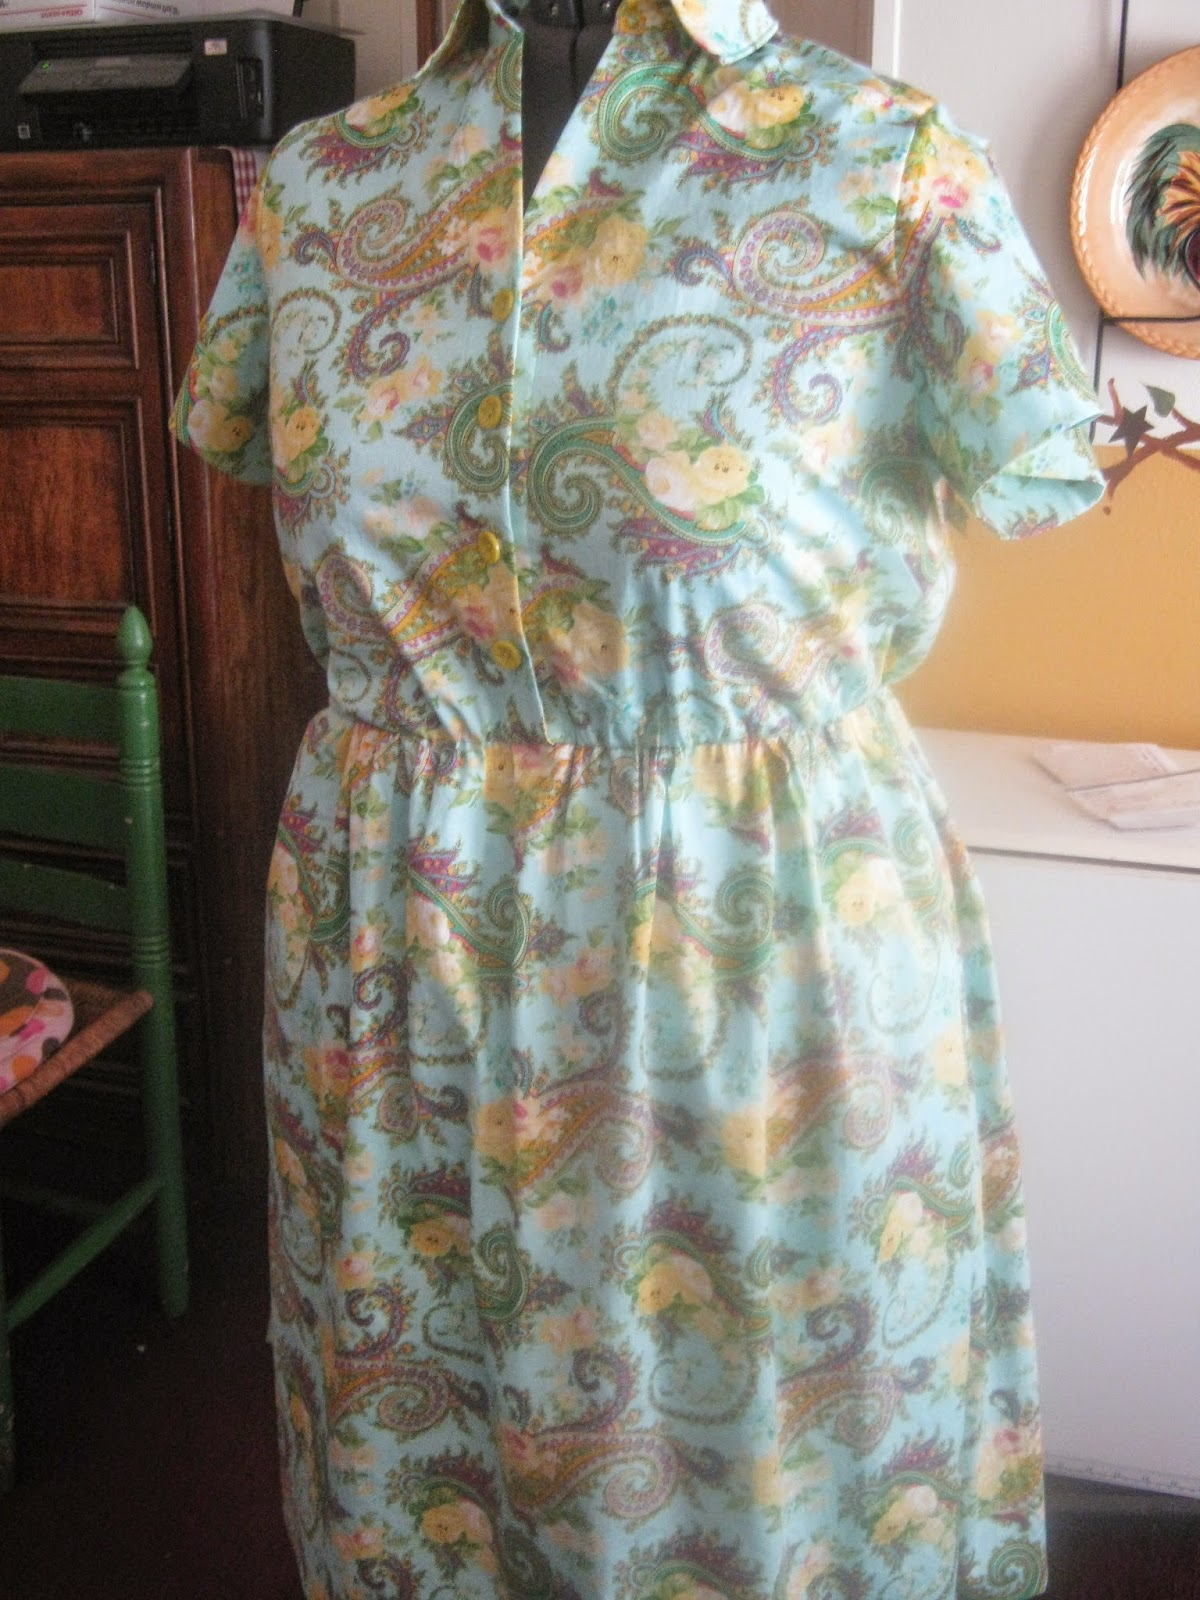 New Look A6180 Aqua Paisley Shirt Dress Front View www.sewplus.blogspot.com